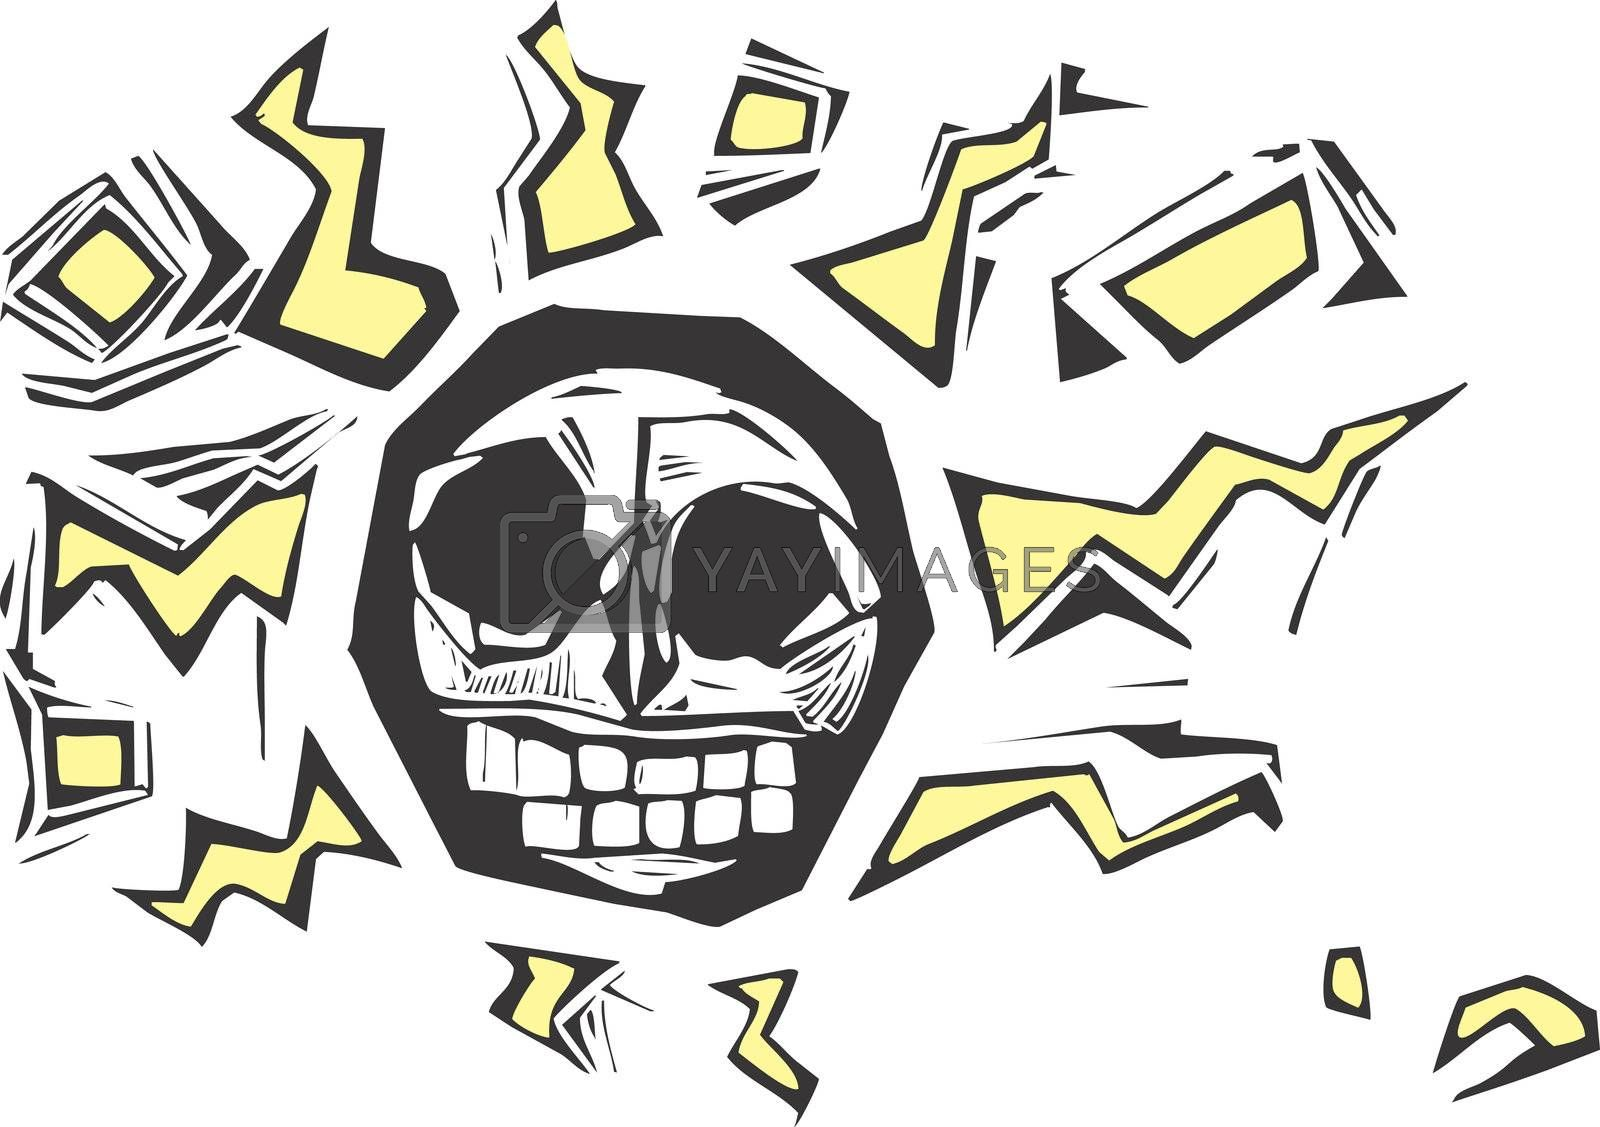 Stylized woodcut image of a skull with lightning bolts surrounding it.